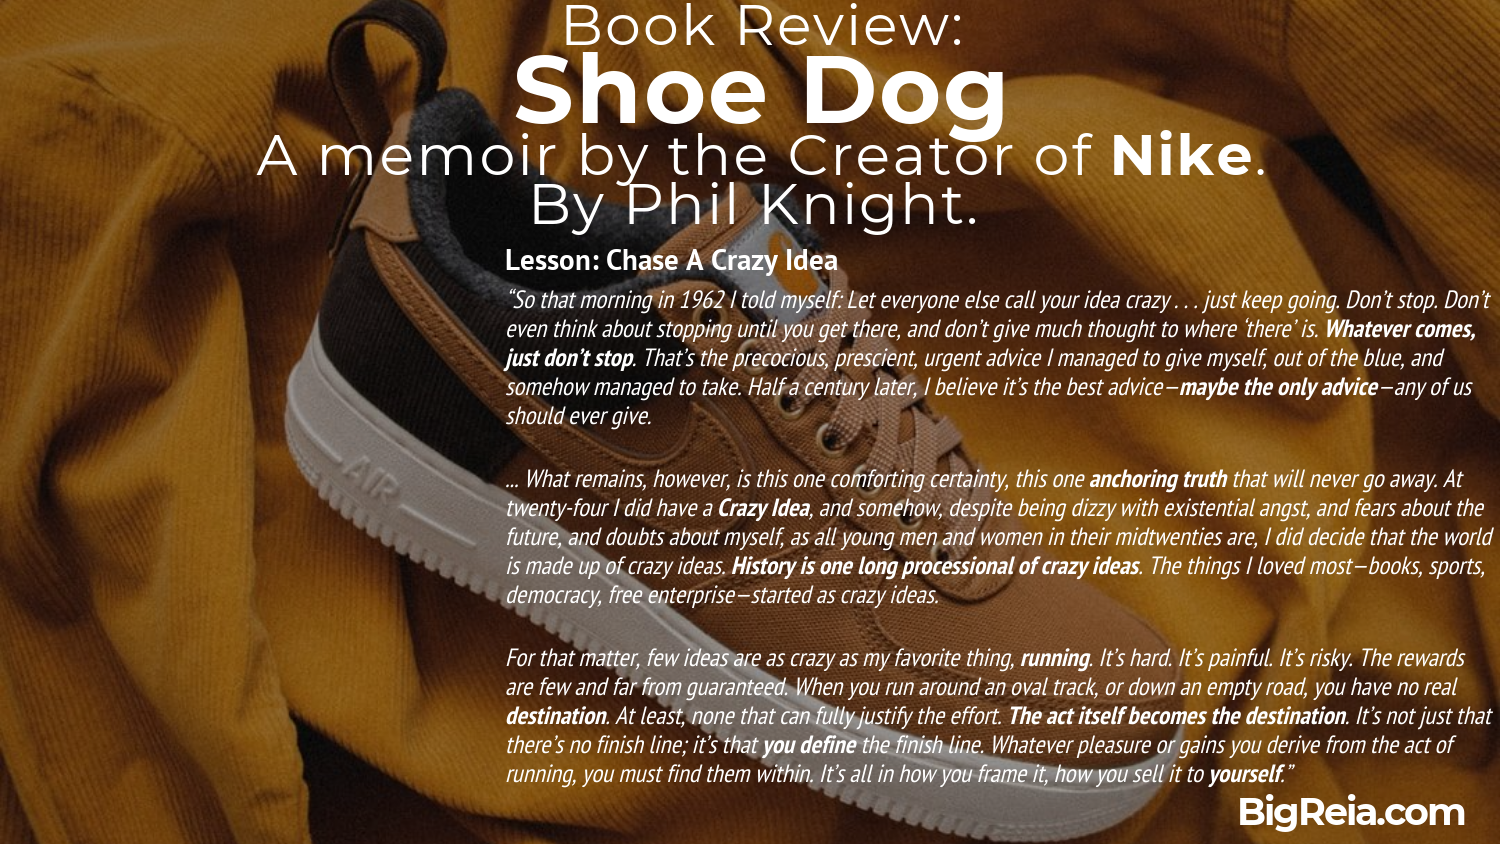 Book review excerpt from Shoe Dog